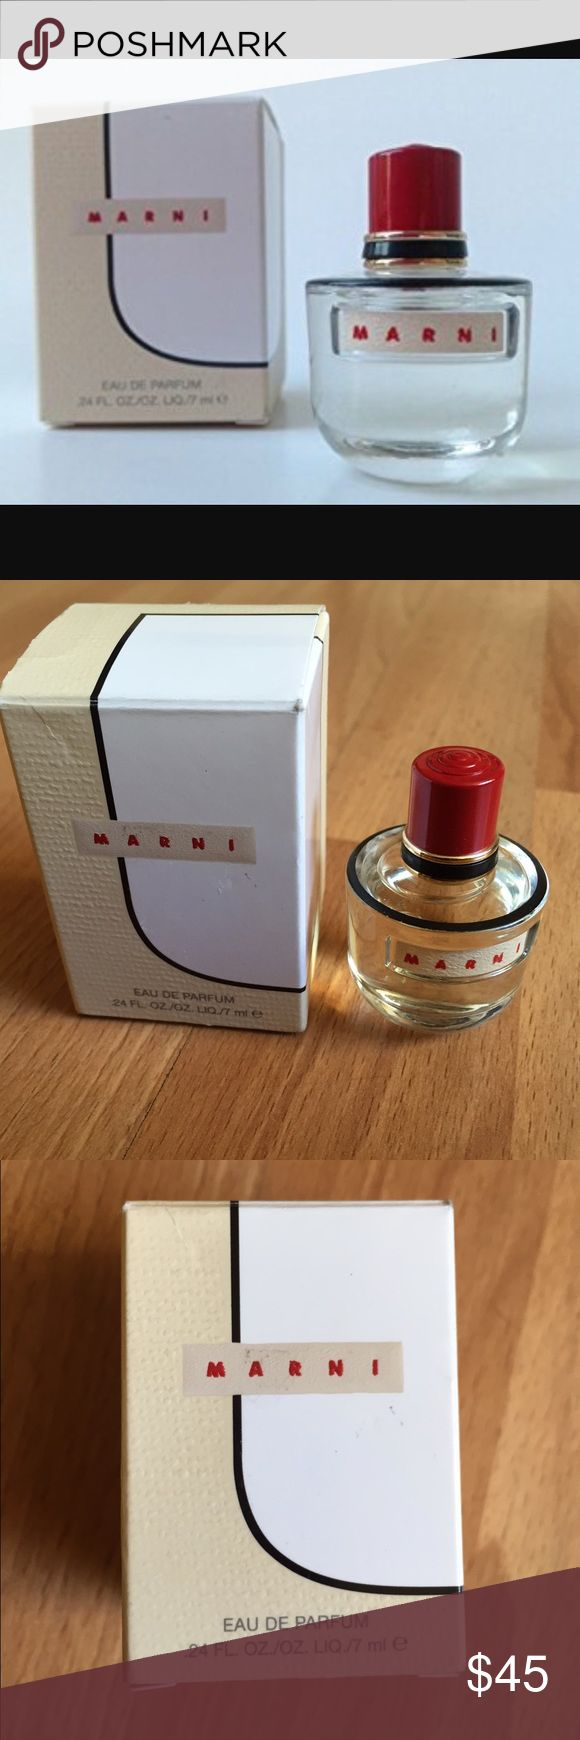 NIB Marni .24 ounce mini eau de parfume NIB Marni Eau De Parfum Deluxe Miniature 0.24 Oz / 7 Ml Great for purse or travel!   Just like Consuelo Castiglioni, as a designer, plays with classic elements, getting unexpected results through a subtle edit of proportions, colors, prints and materials, so the fragrance plays with classic elements in unexpected ways. It combines ethereal spices, eclectic raw woods, and a touch of rose to create a statement that is both elusive and uniquely memorable…